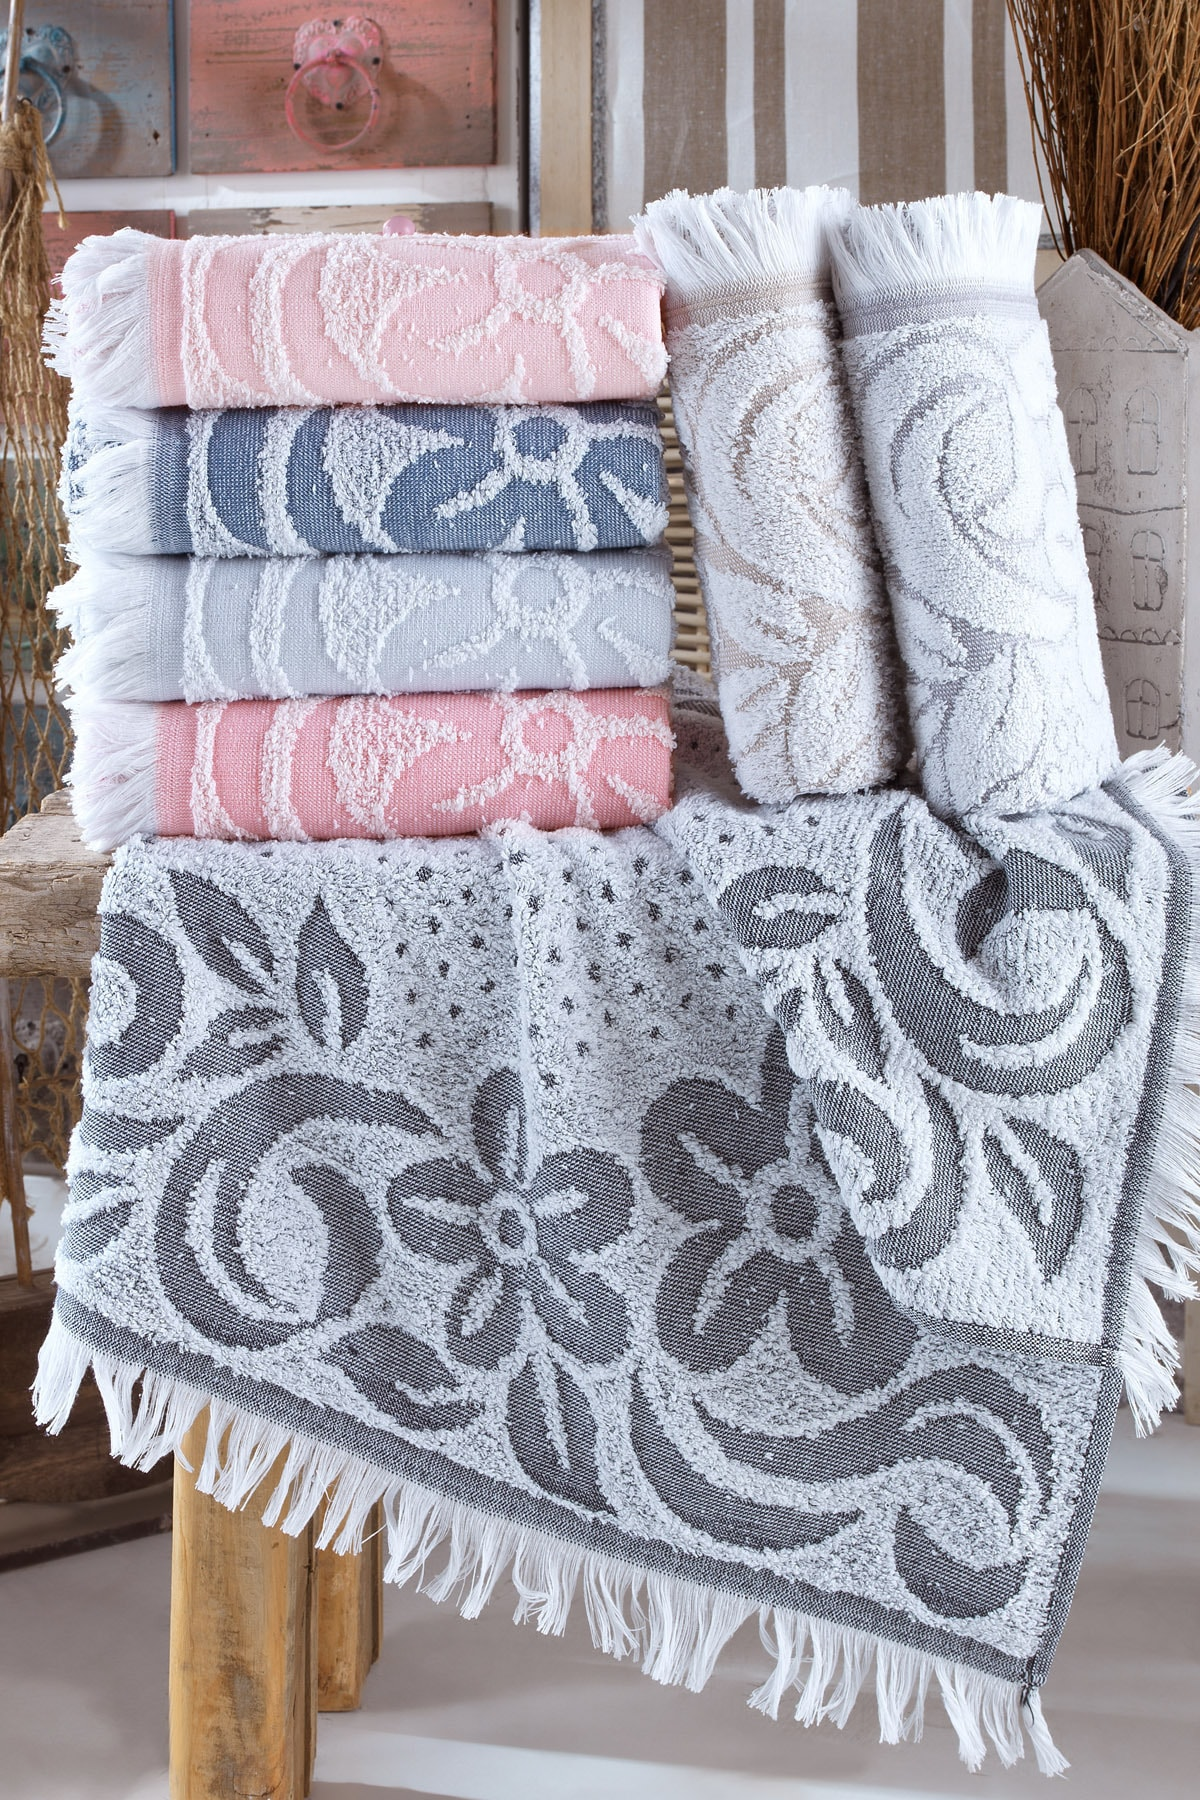 Peonia Floral Embroidery Hand And Face Towel Set 6 Pieces 50x90 cm 100% Cotton Jacquard Fringed Quick-Dry Kitchen Turkish Towel